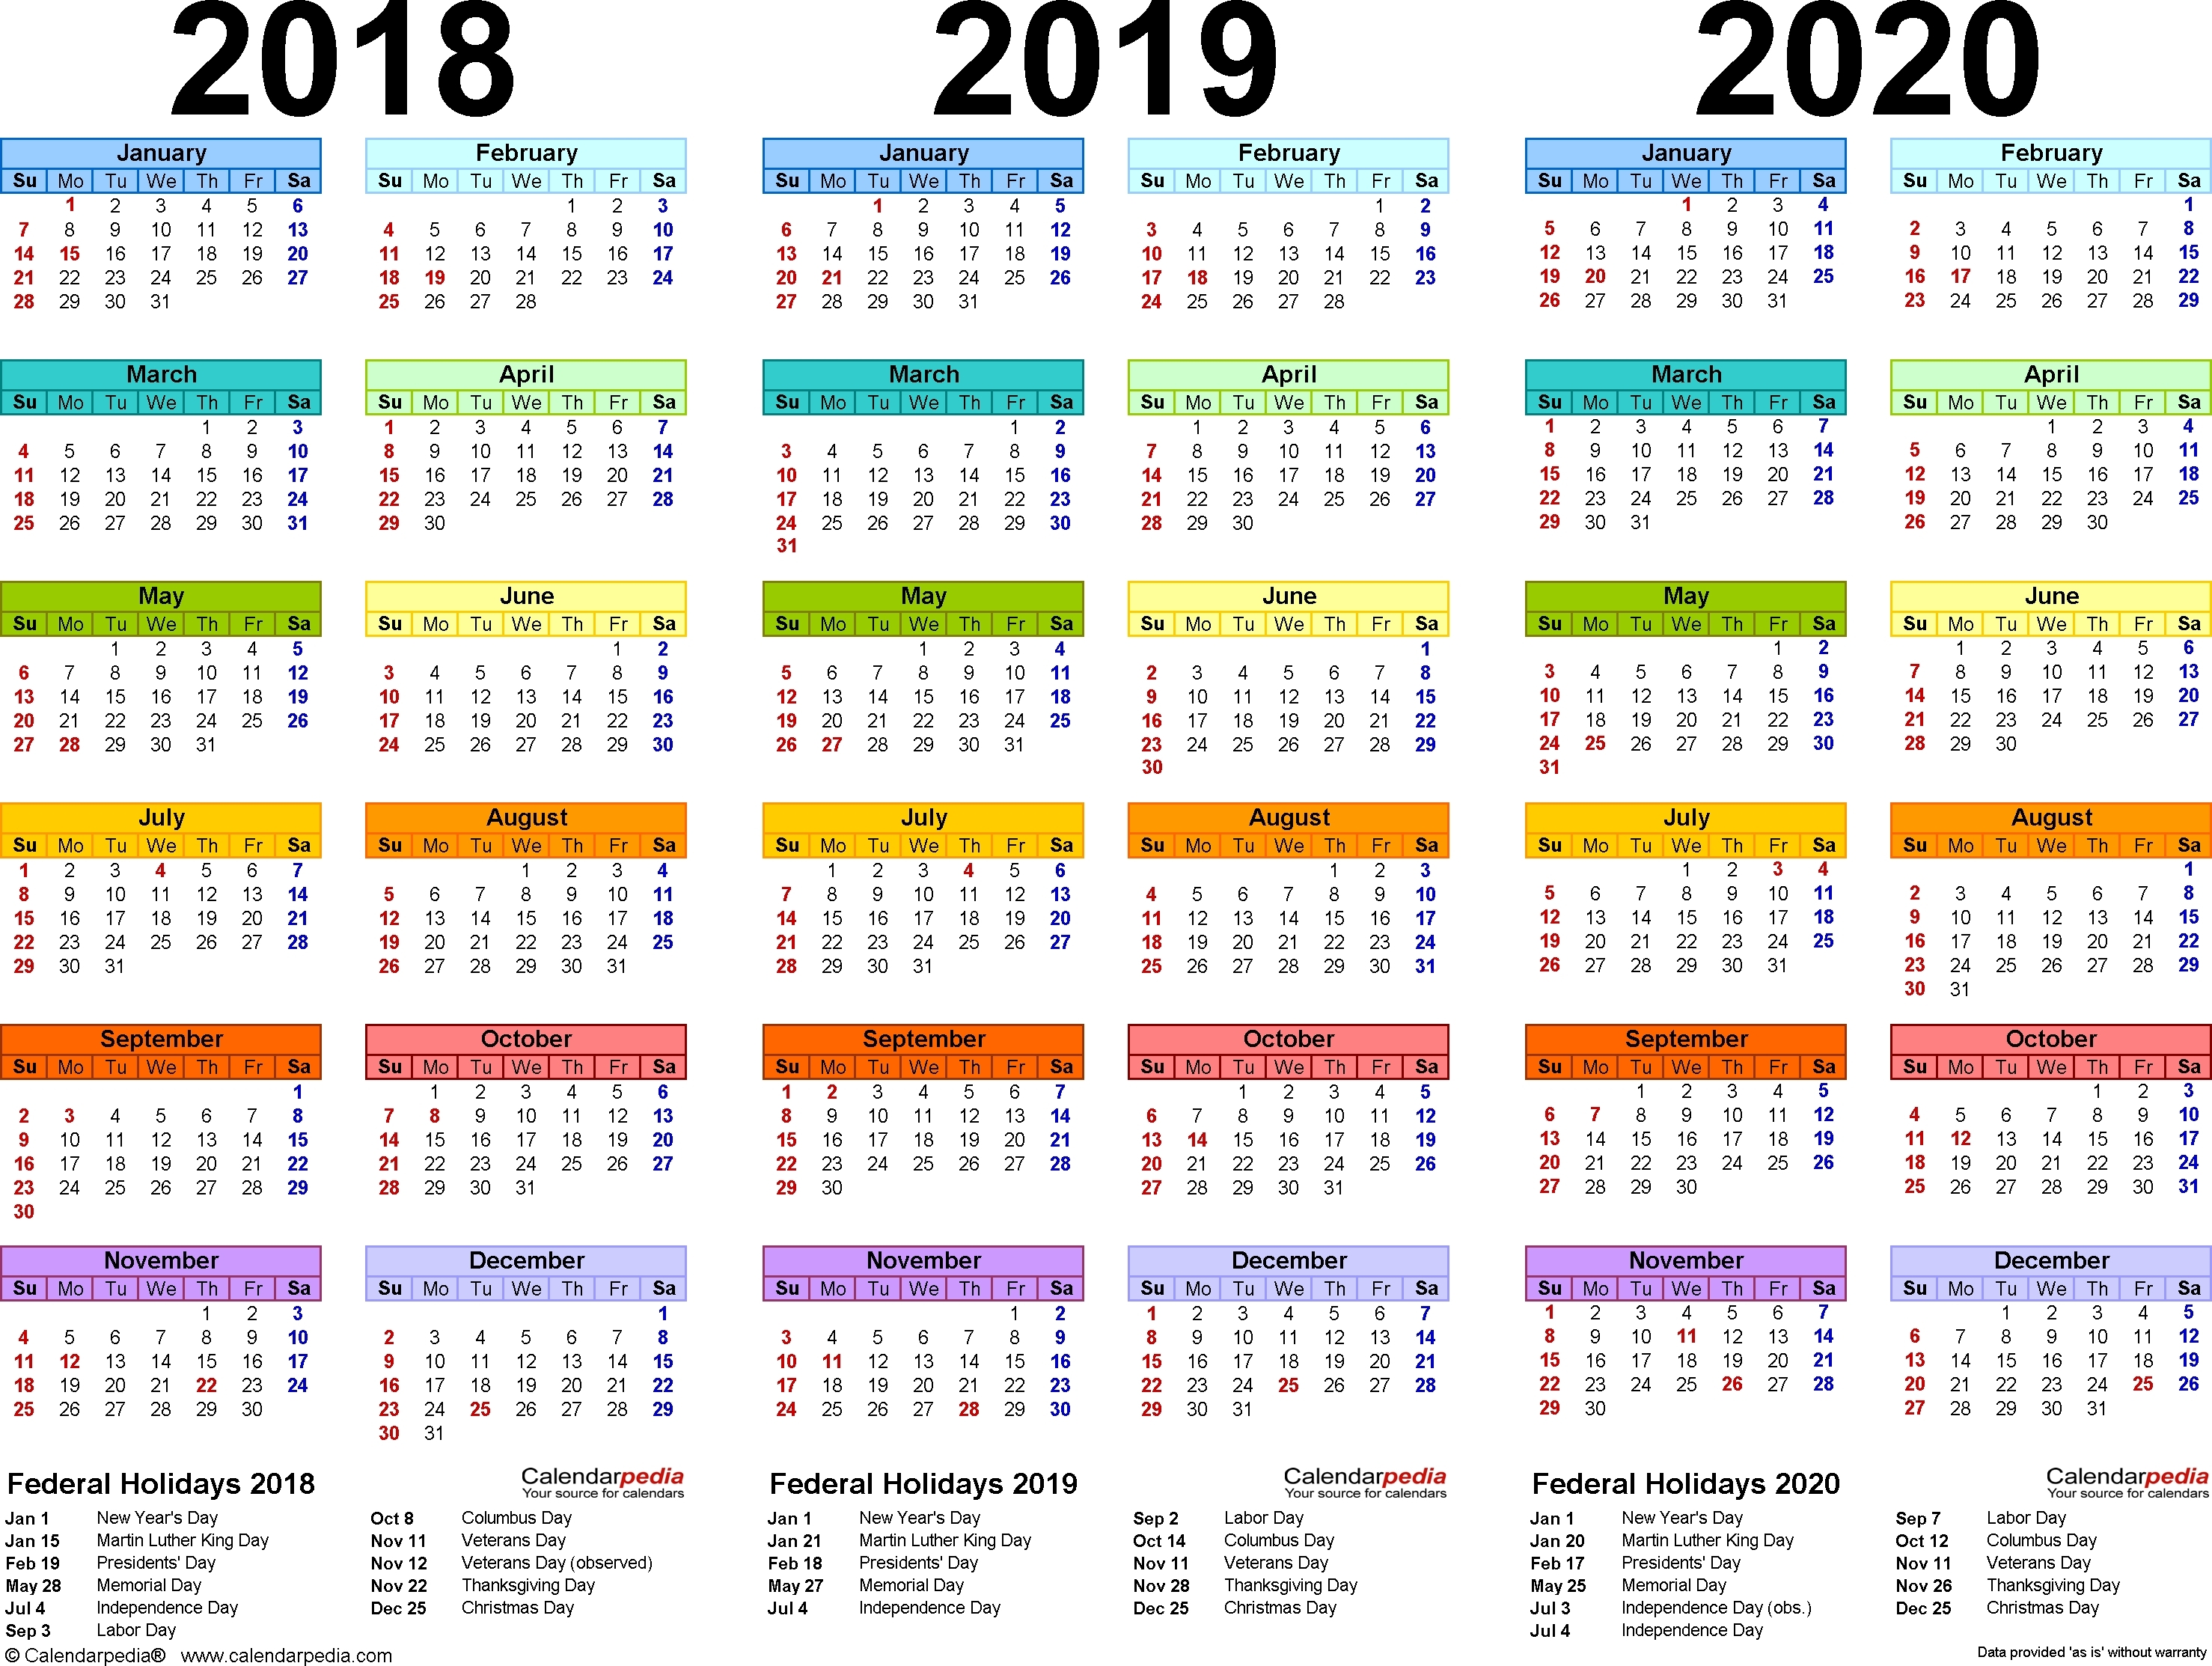 Exceptional 2020 Calendar South Africa • Printable Blank Calendar_School Calendar 2020 South Africa